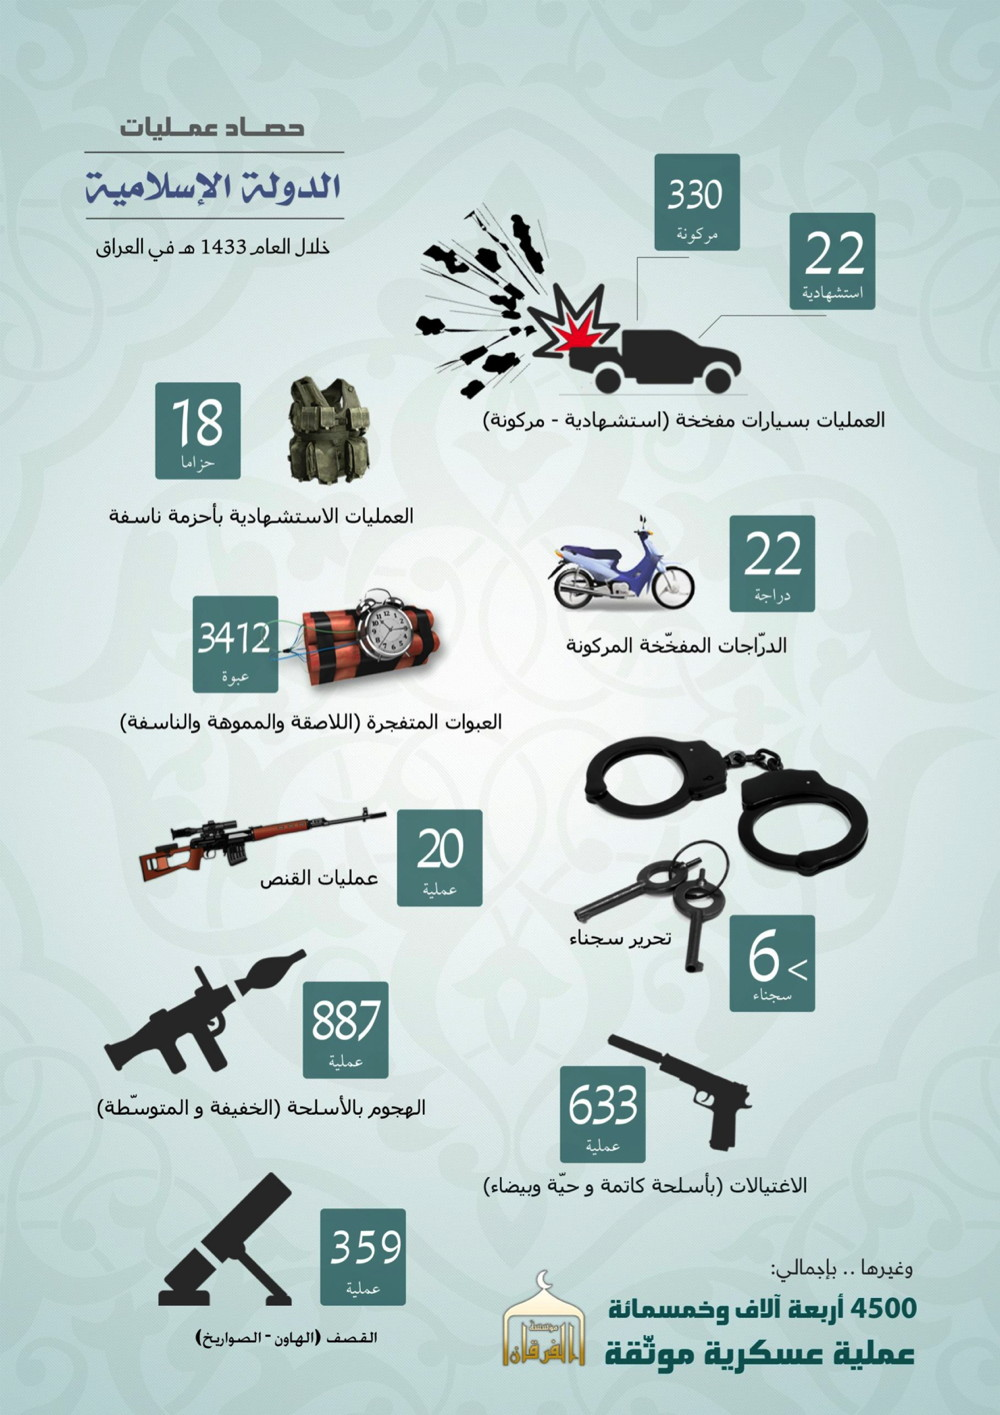 Isis_infographic1